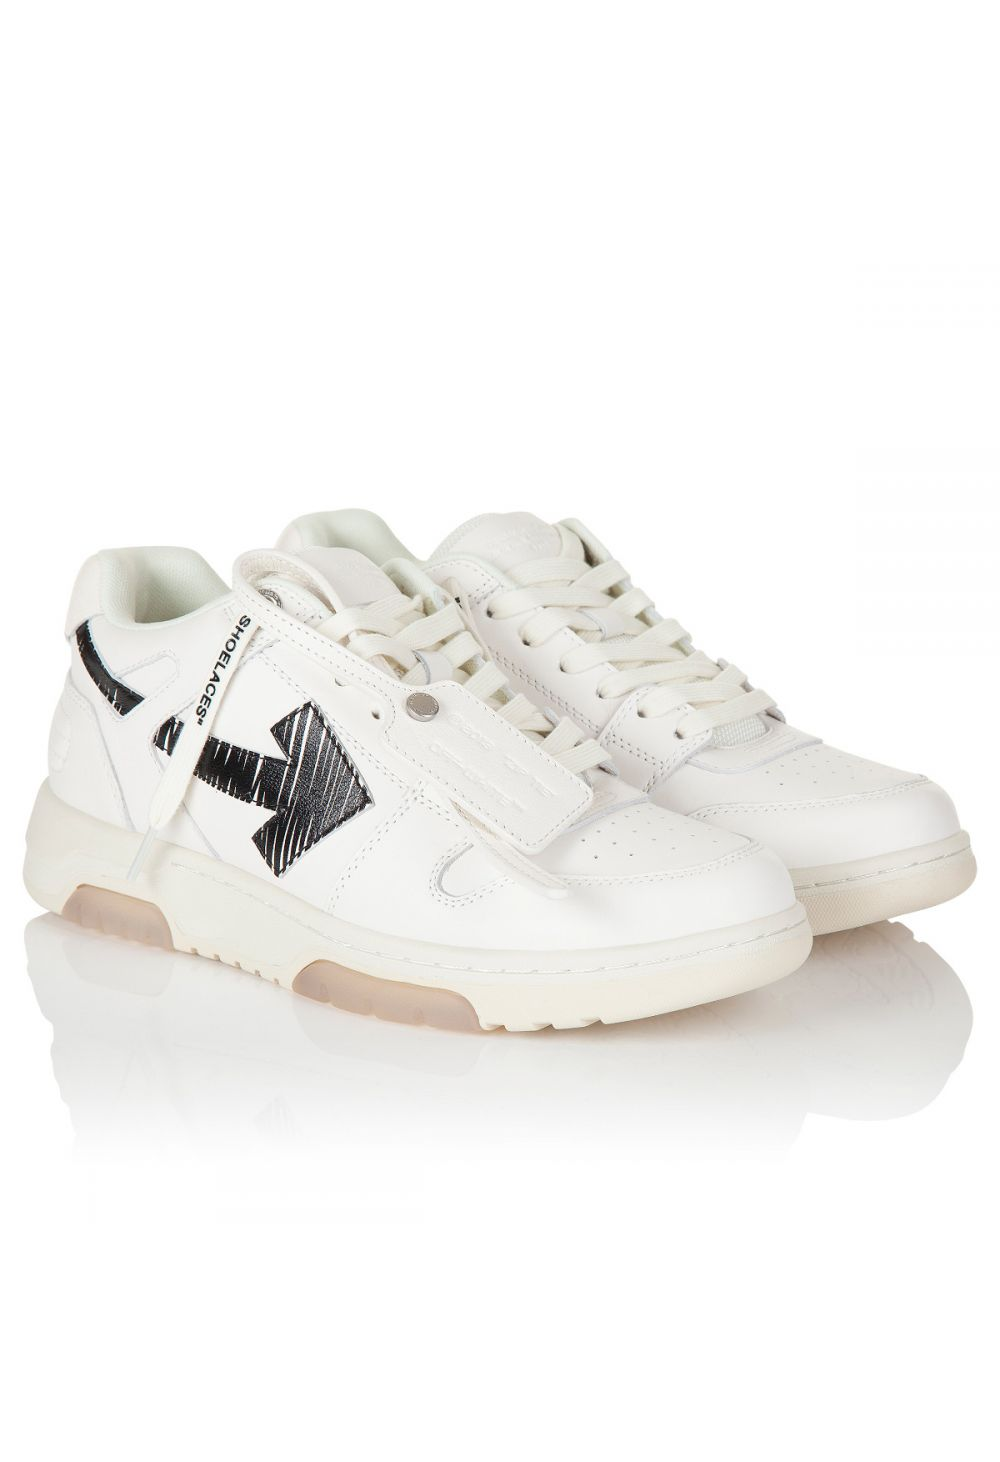 Off White Out Of Office Sneakers